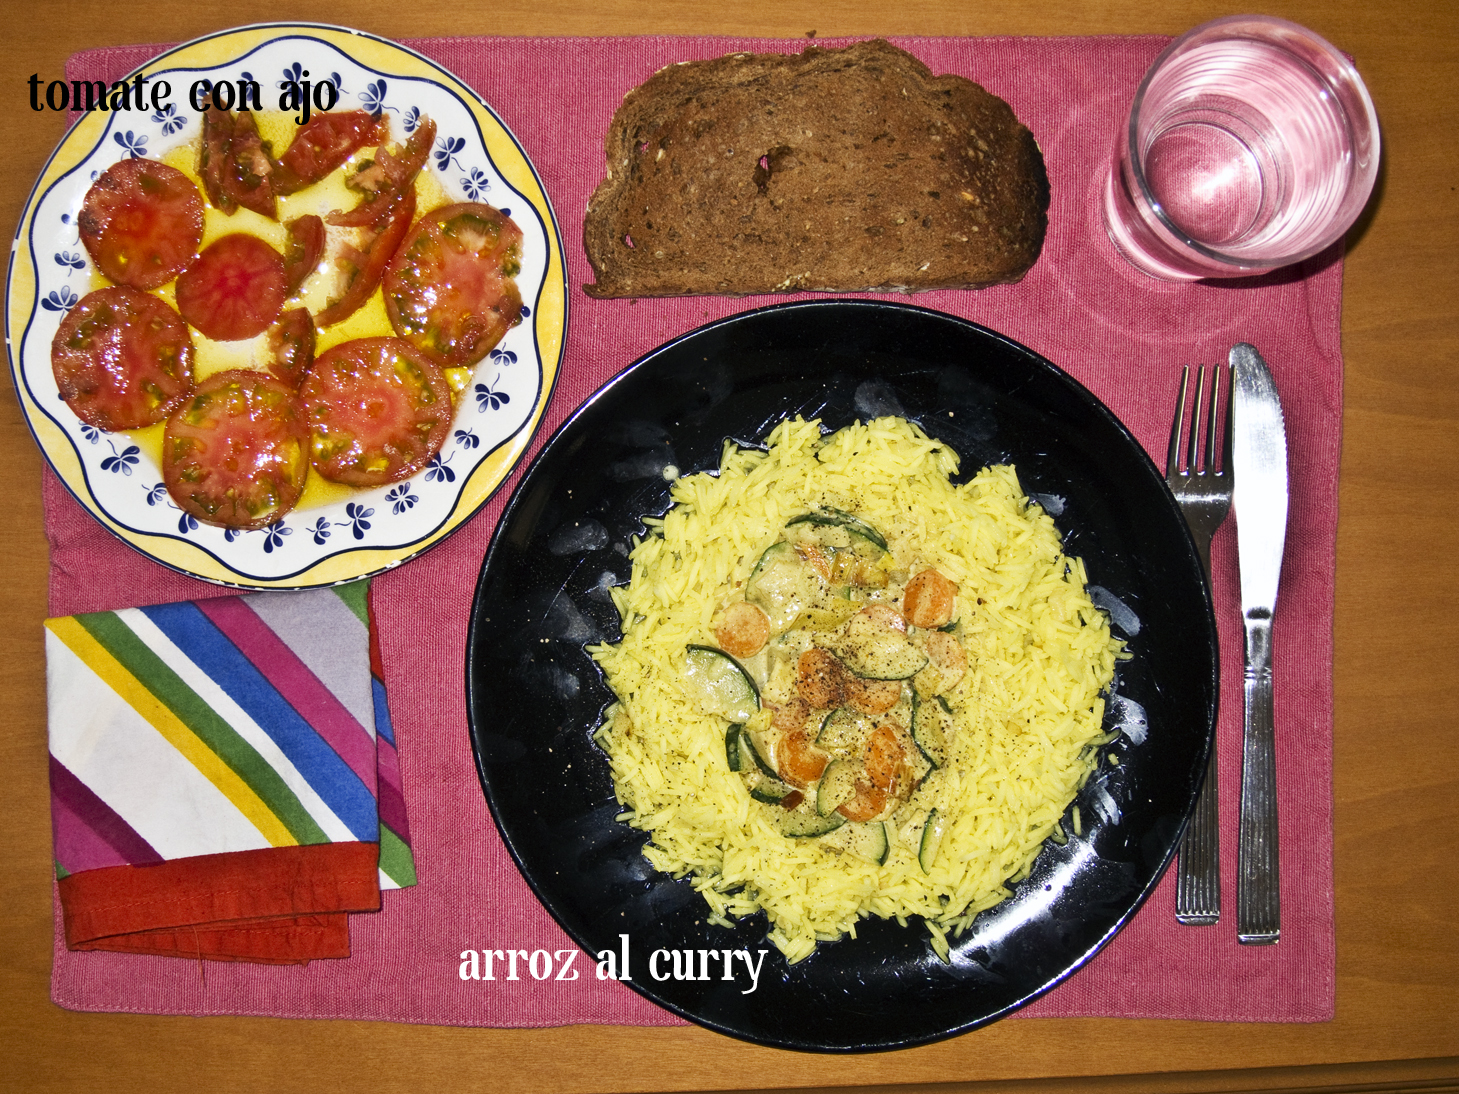 Arroz con calabacin al curry